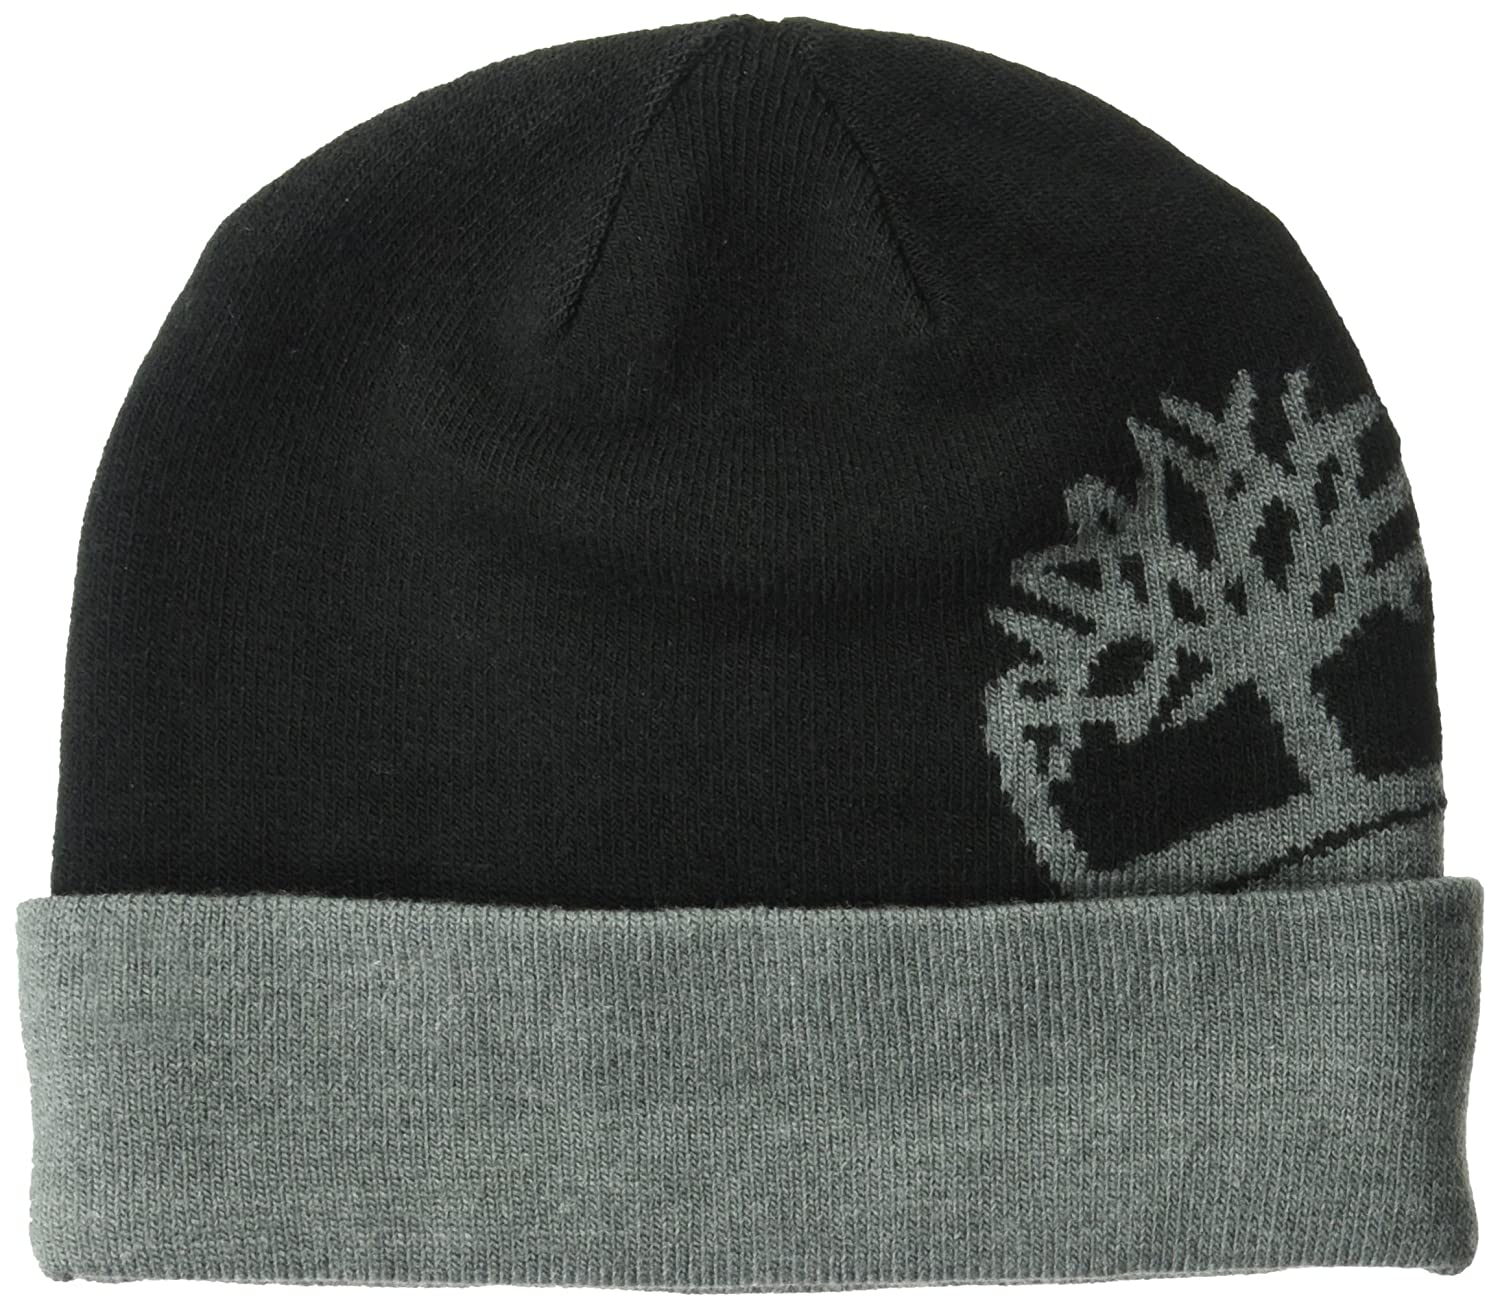 7263b7aeb18 Best Place To Get Beanies